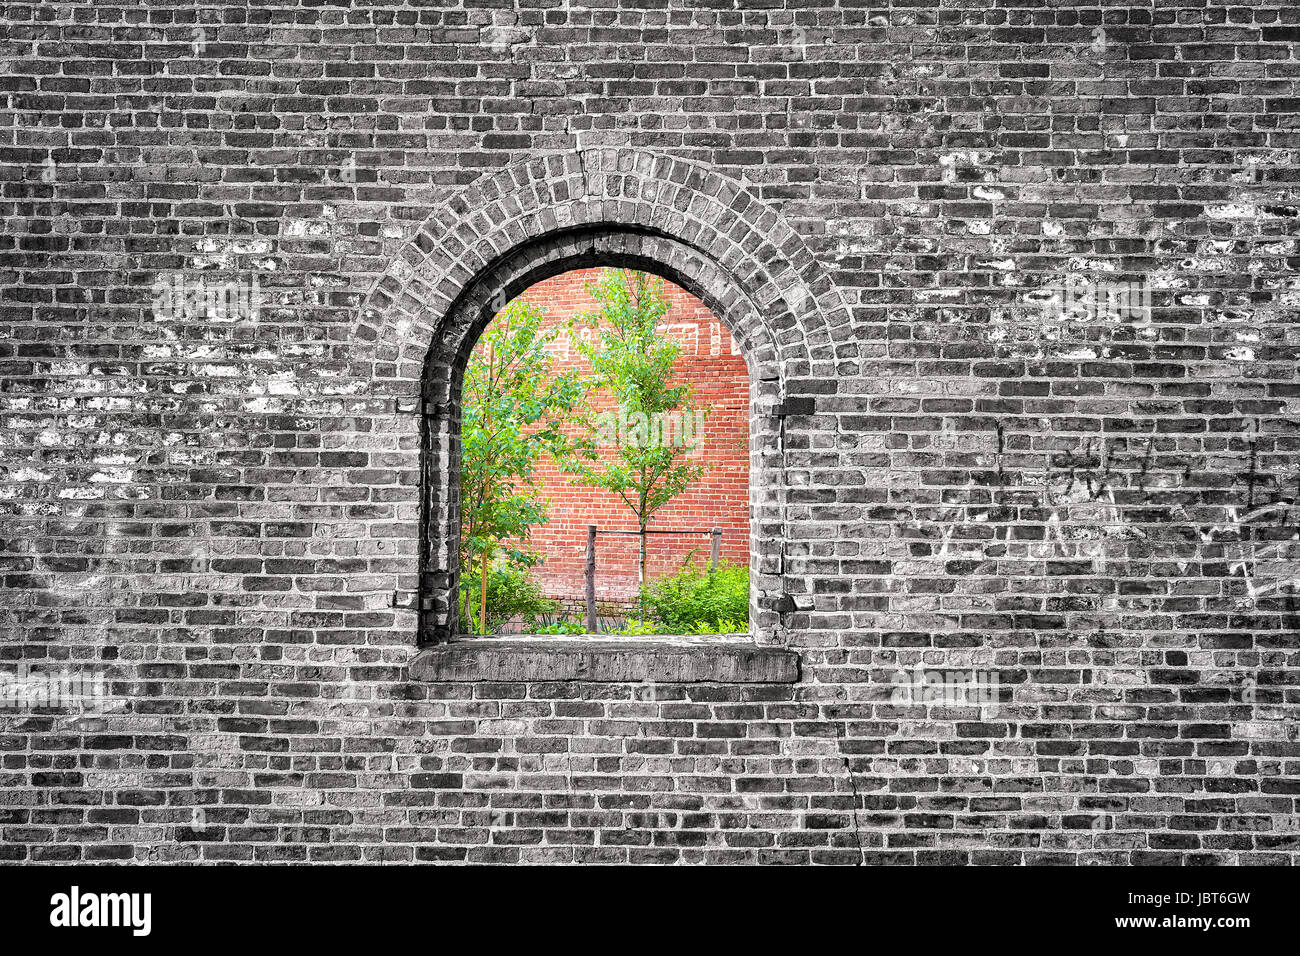 Window in black and white brick wall with green trees, imprisoned nature conceptual photo. - Stock Image